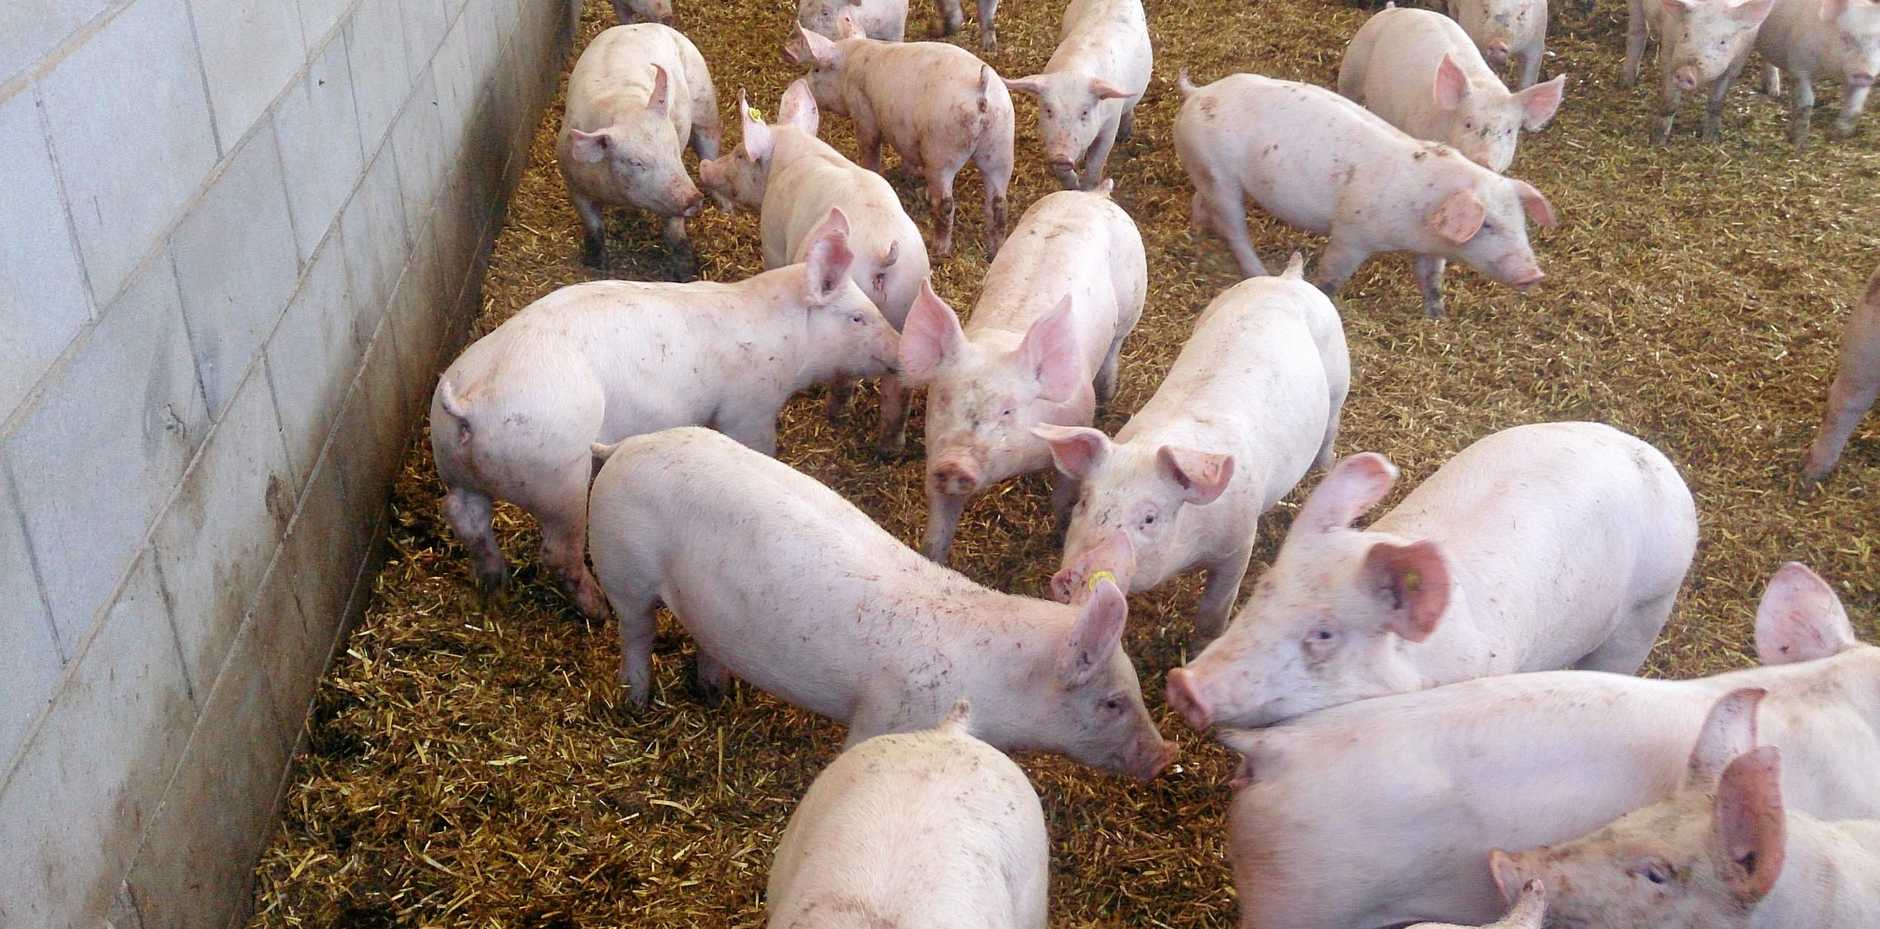 A piggery in Bowenville will increase its capacity to more than 12,000, after approval from the Toowoomba Regional Council.